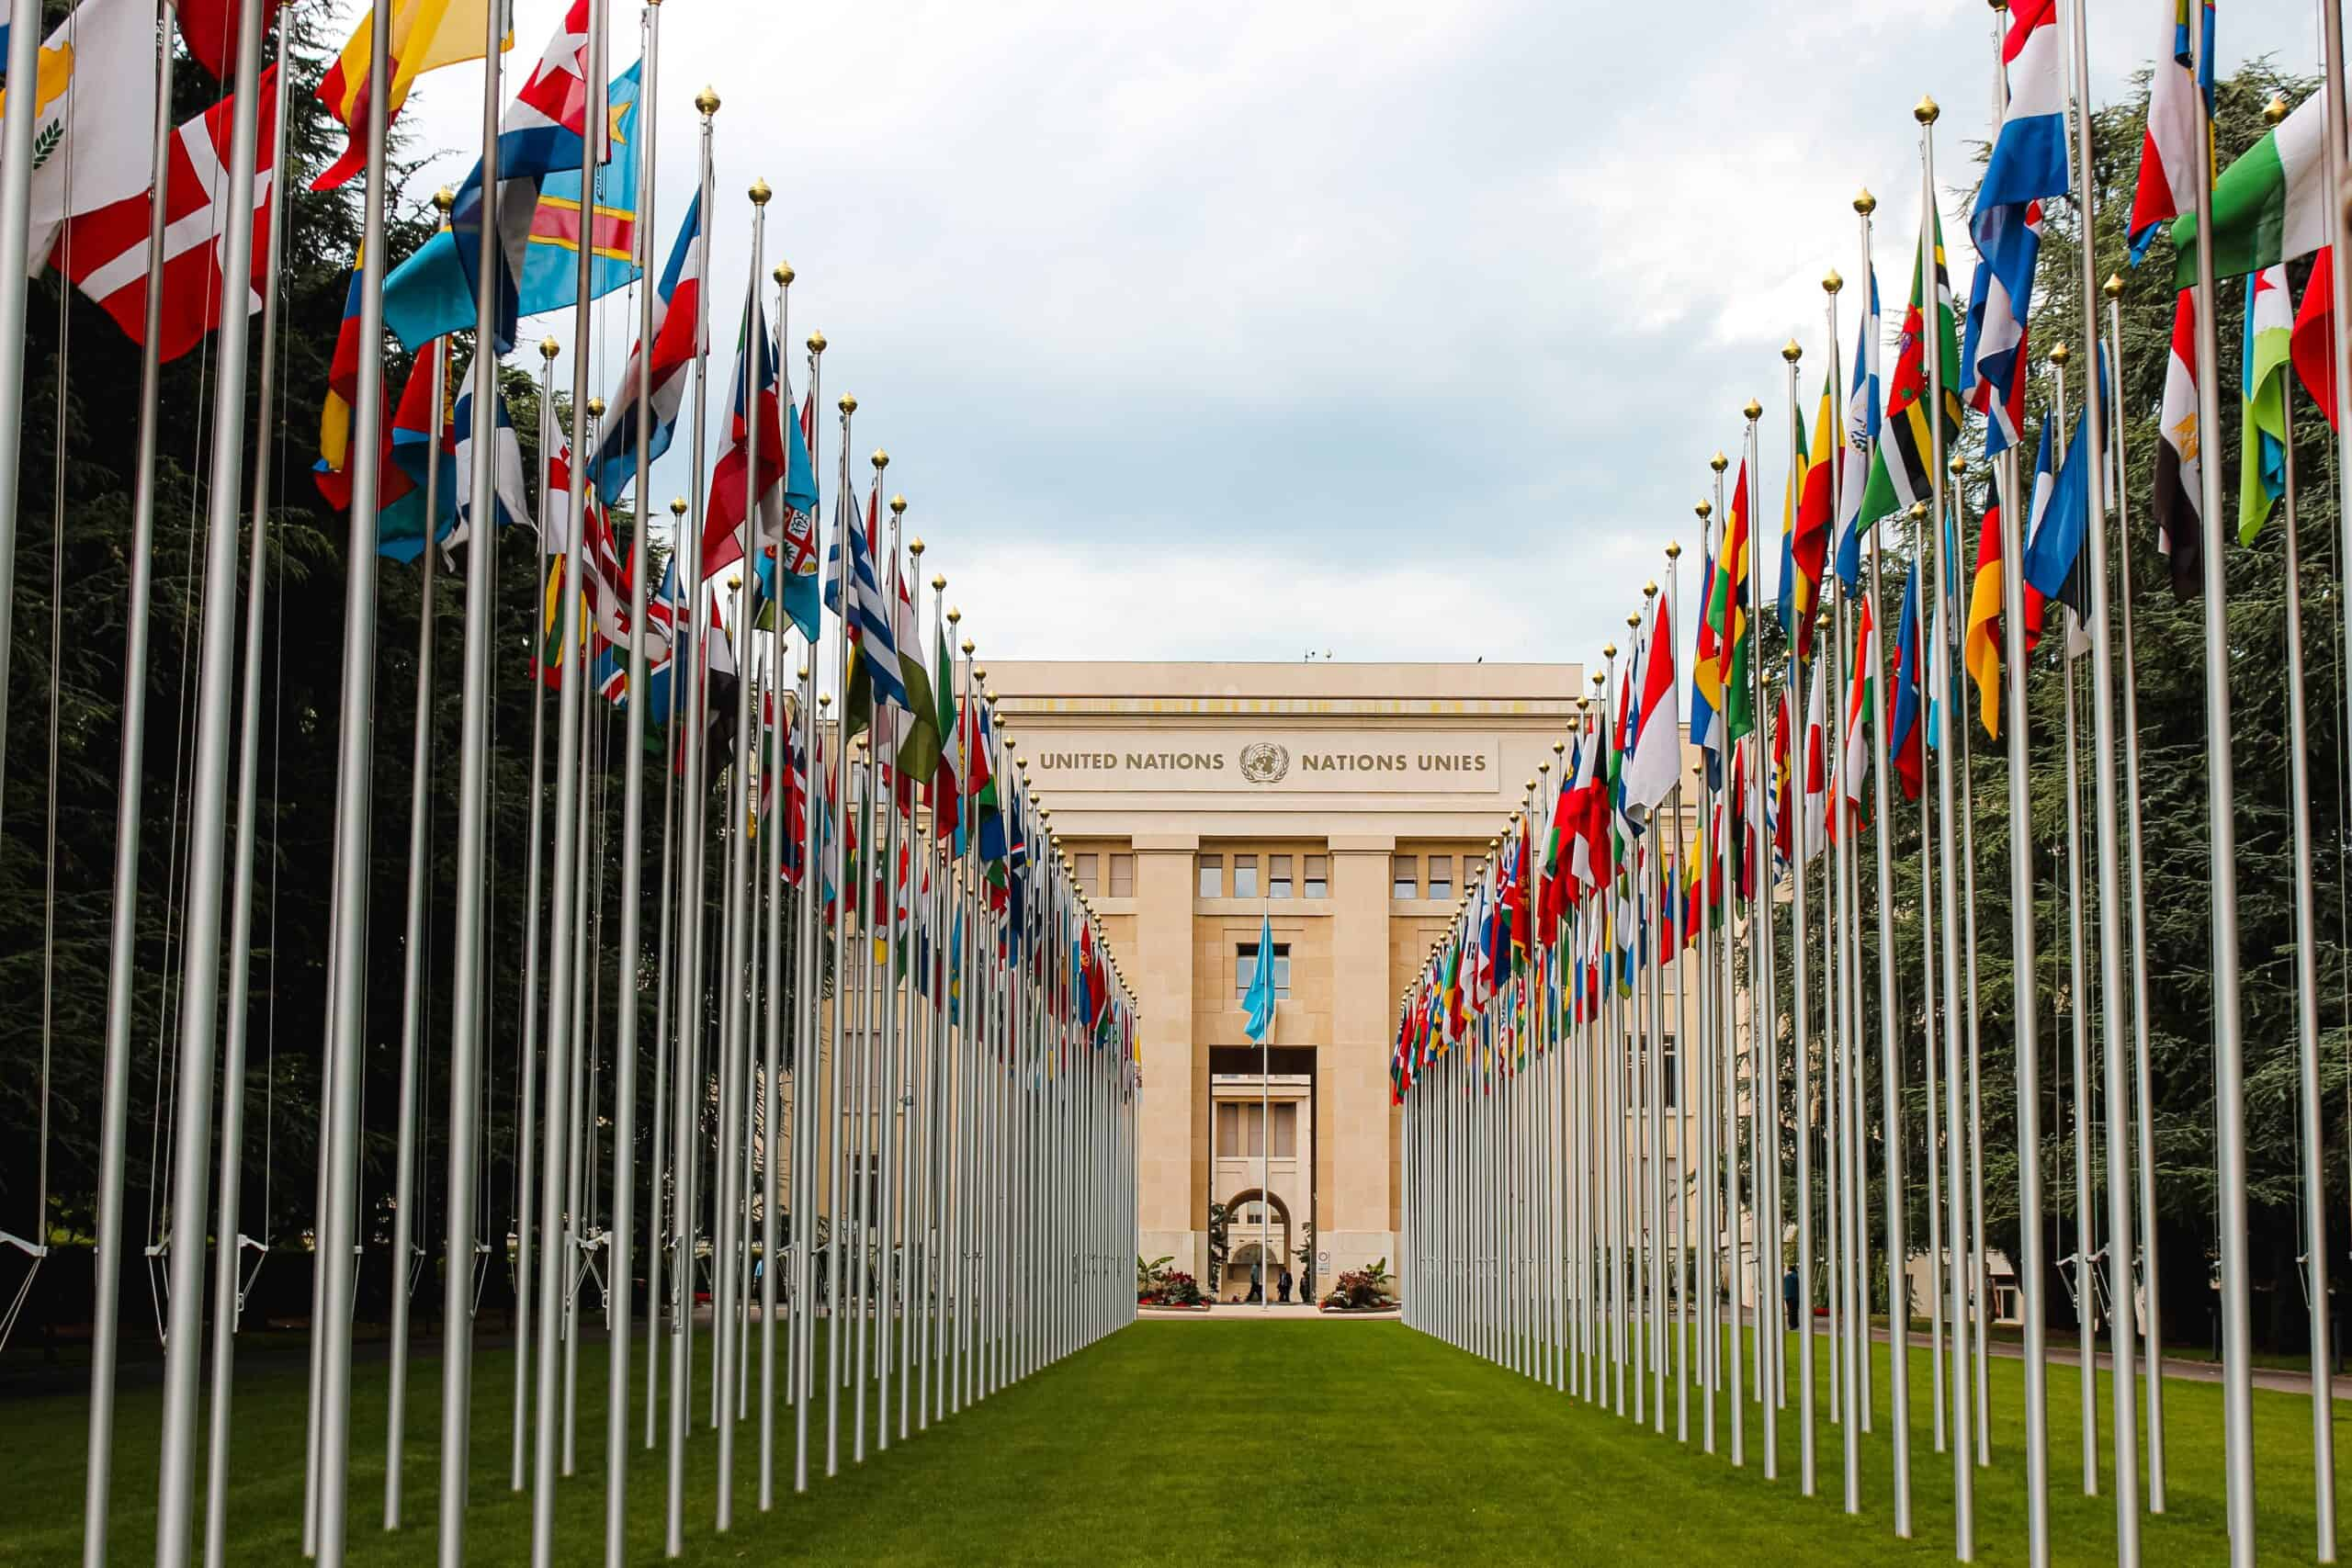 Sustainable Development from the UN